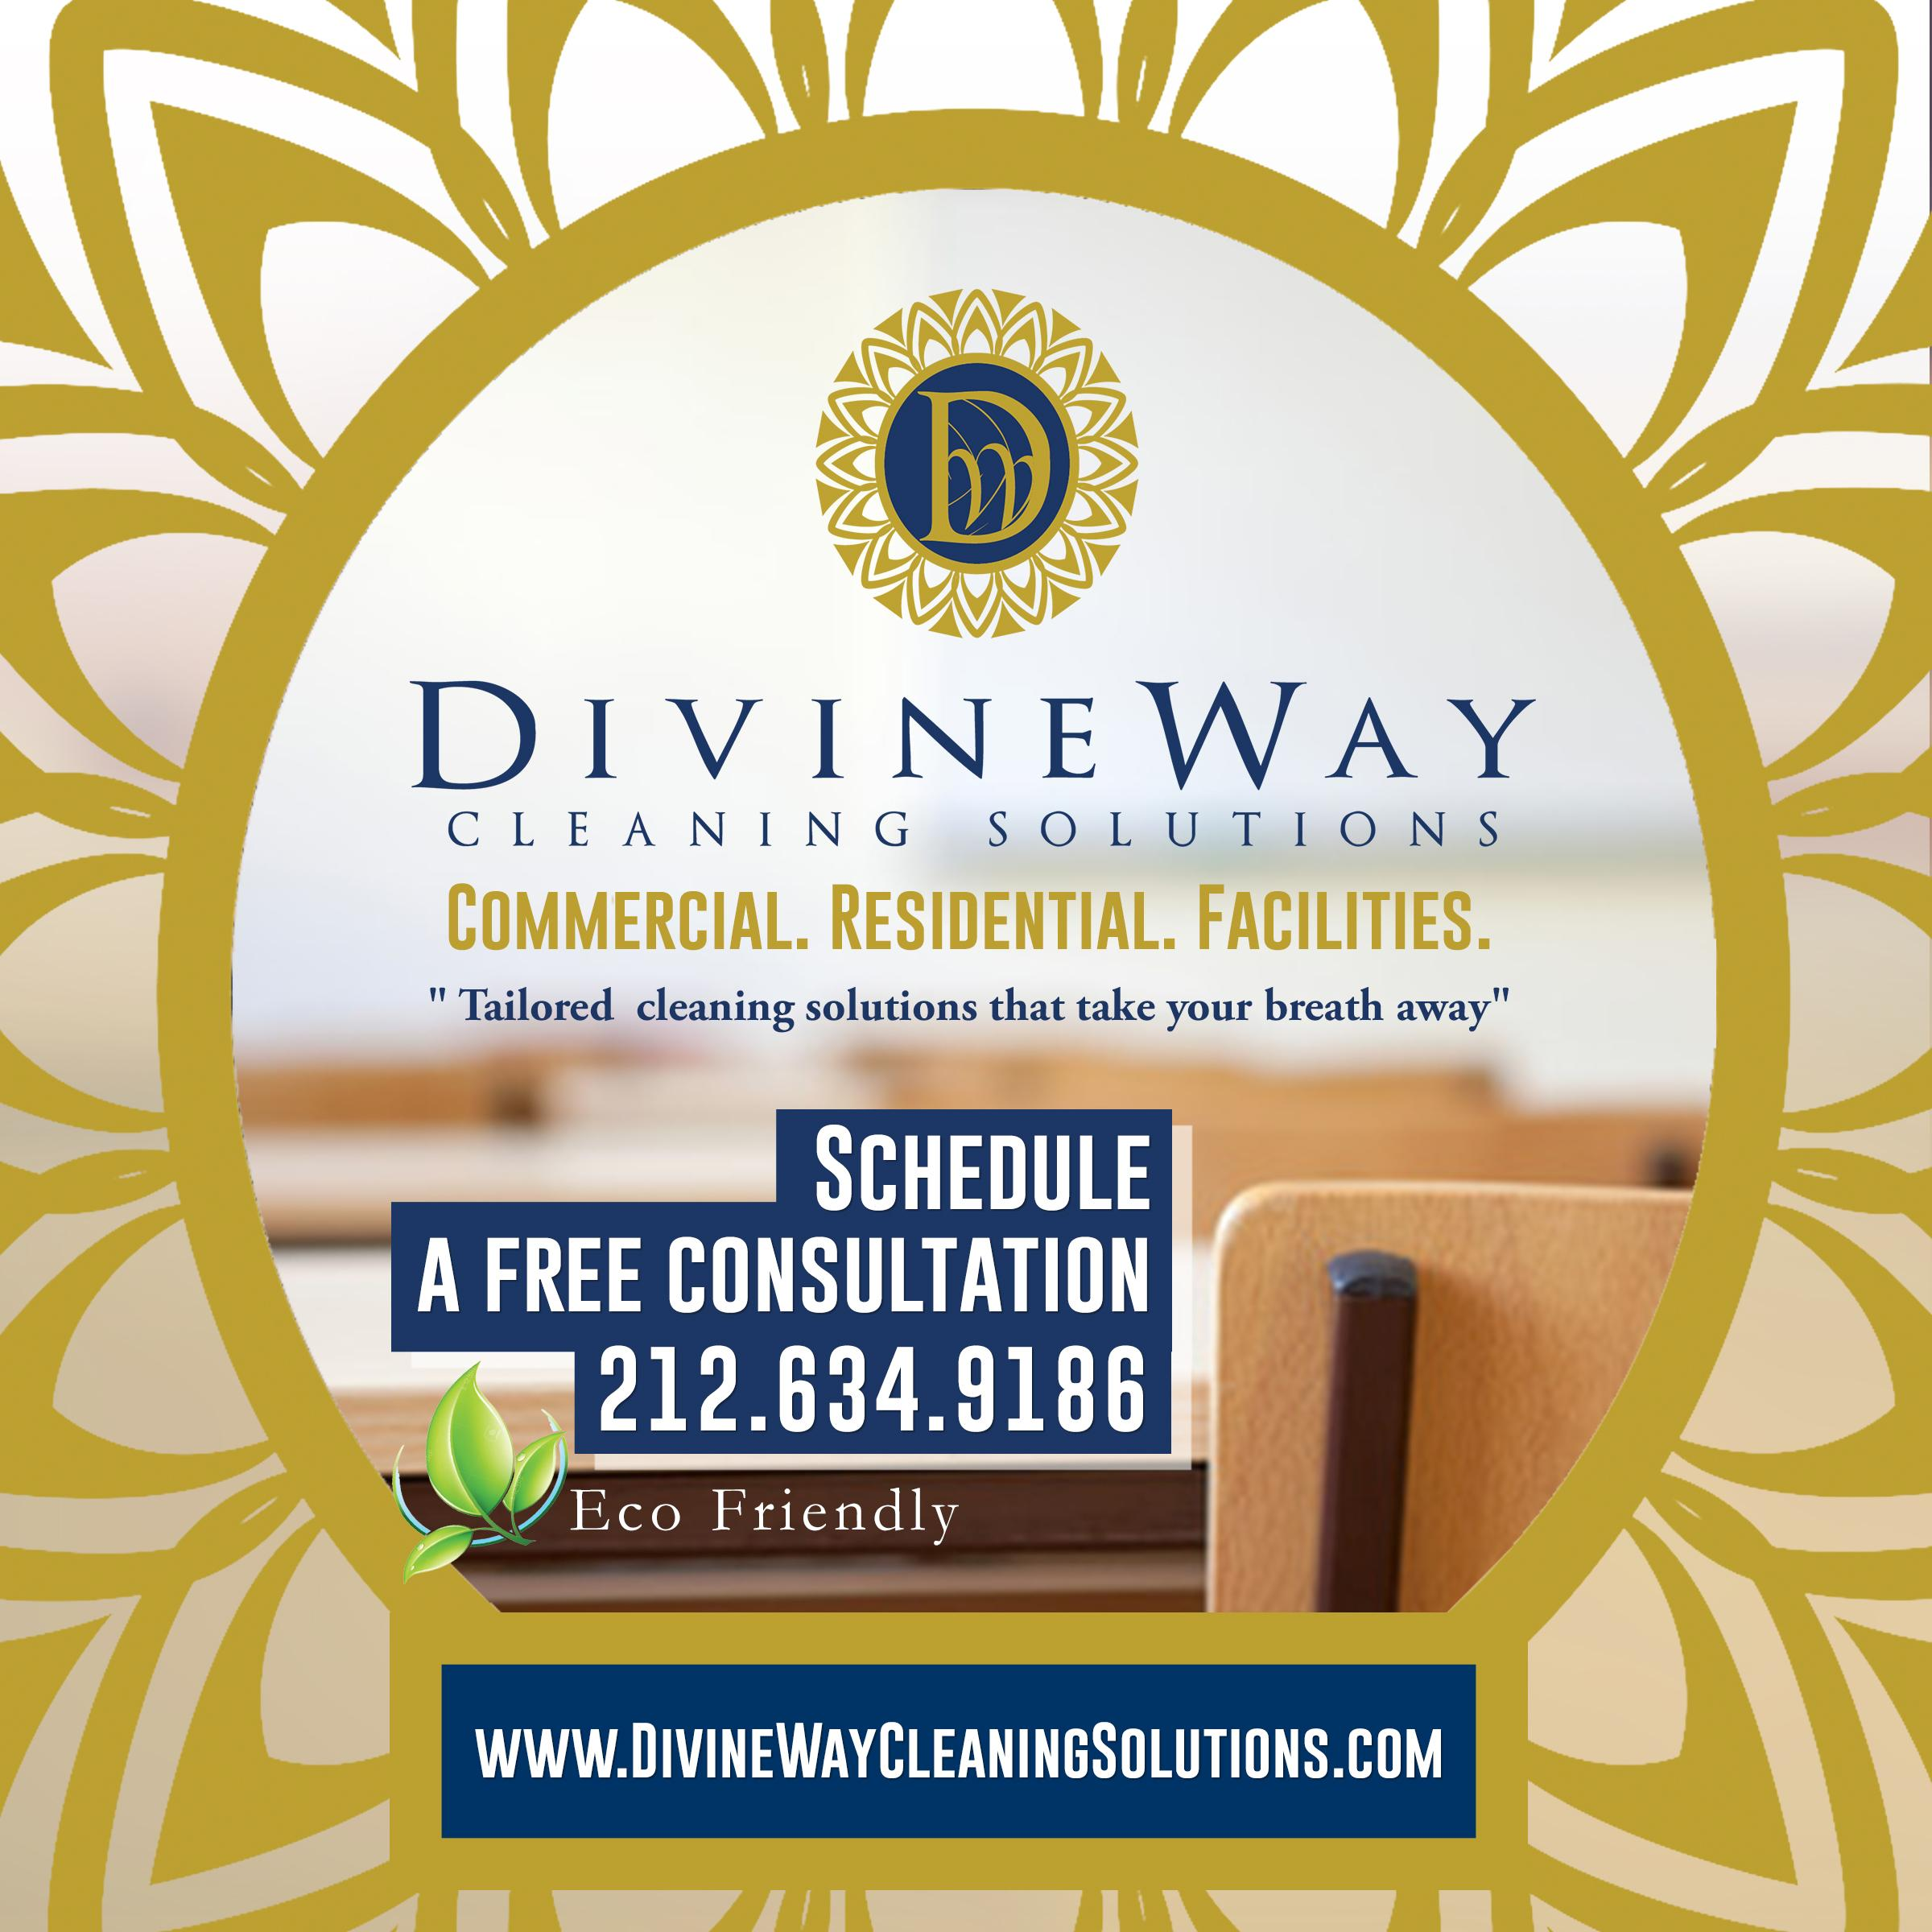 Divineway Cleaning Solutions